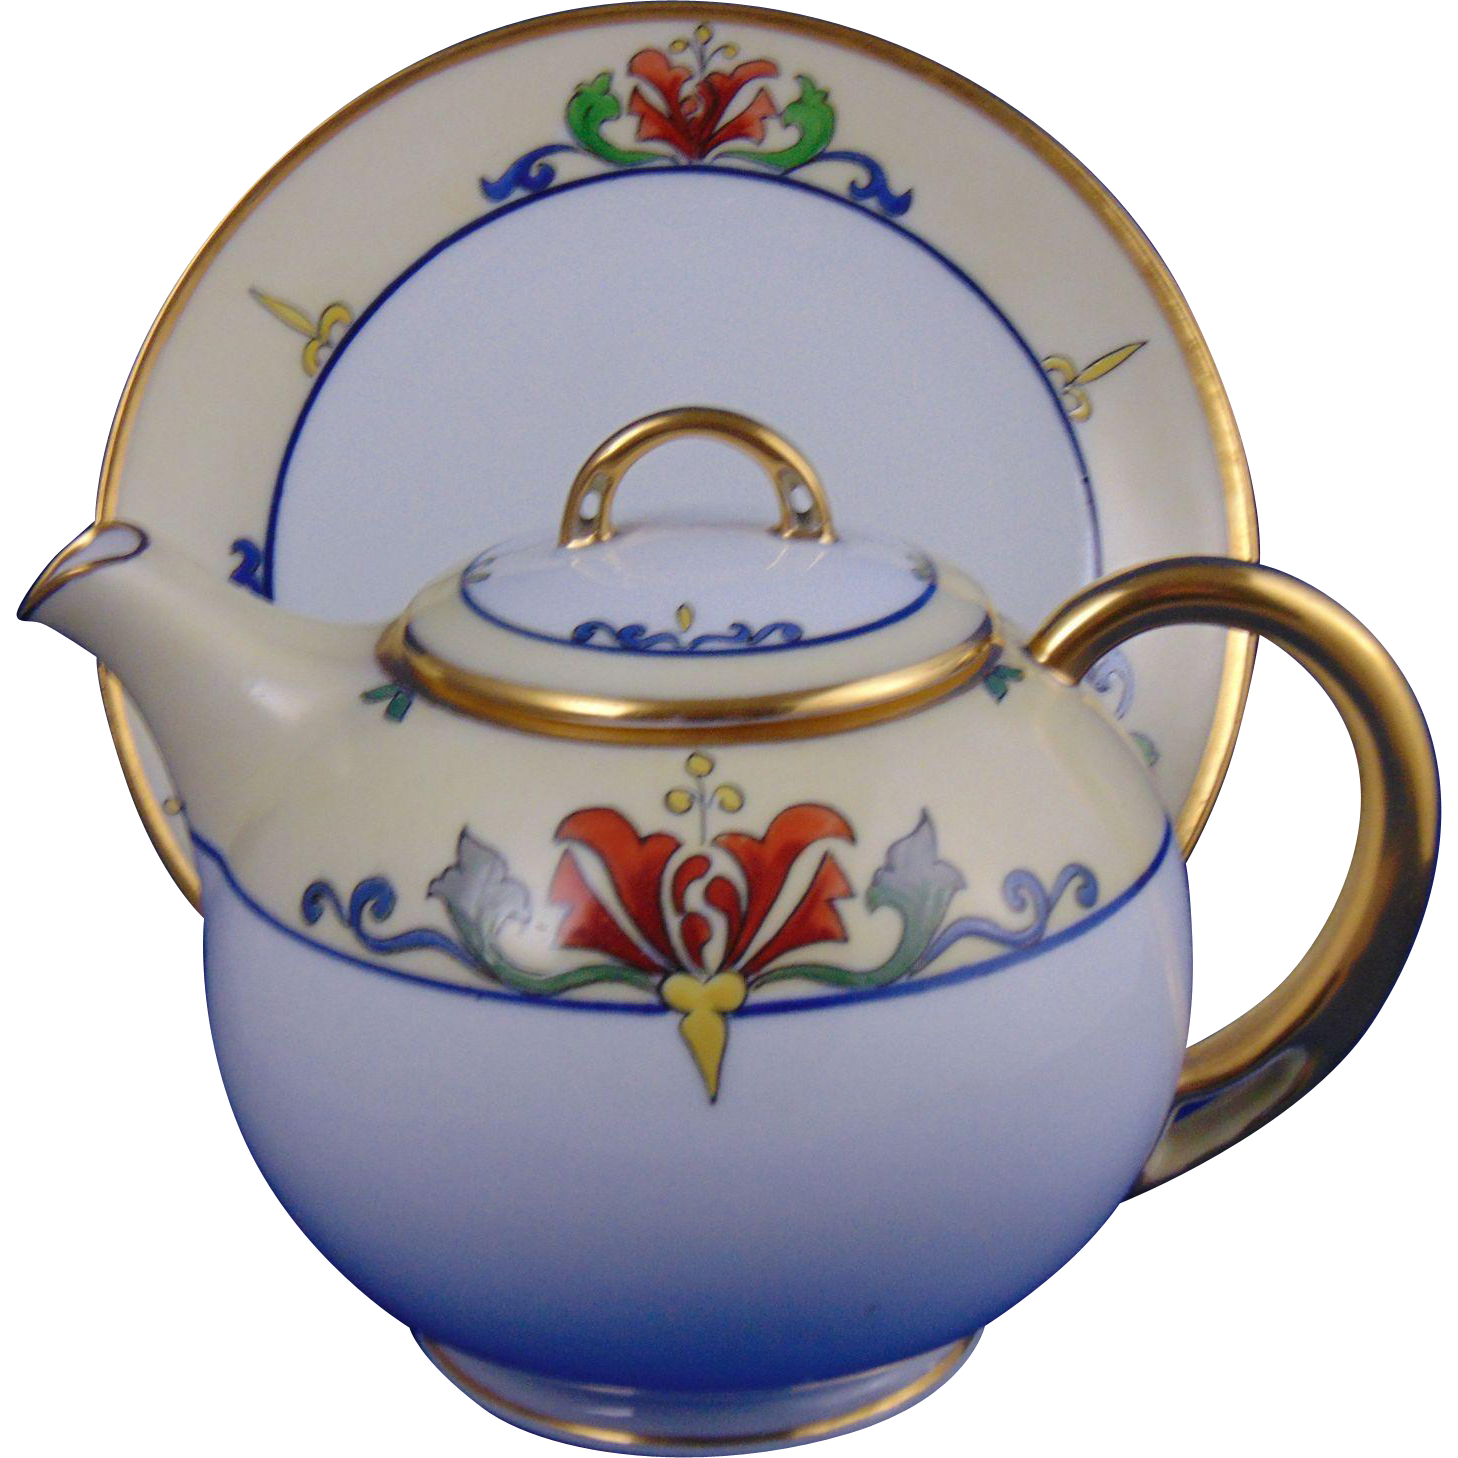 HC Royal Bavaria/Pirkenhammer Julius Brauer Studio Arts & Crafts Teapot/Syrup Pitcher & Plate (c.1914-1923)